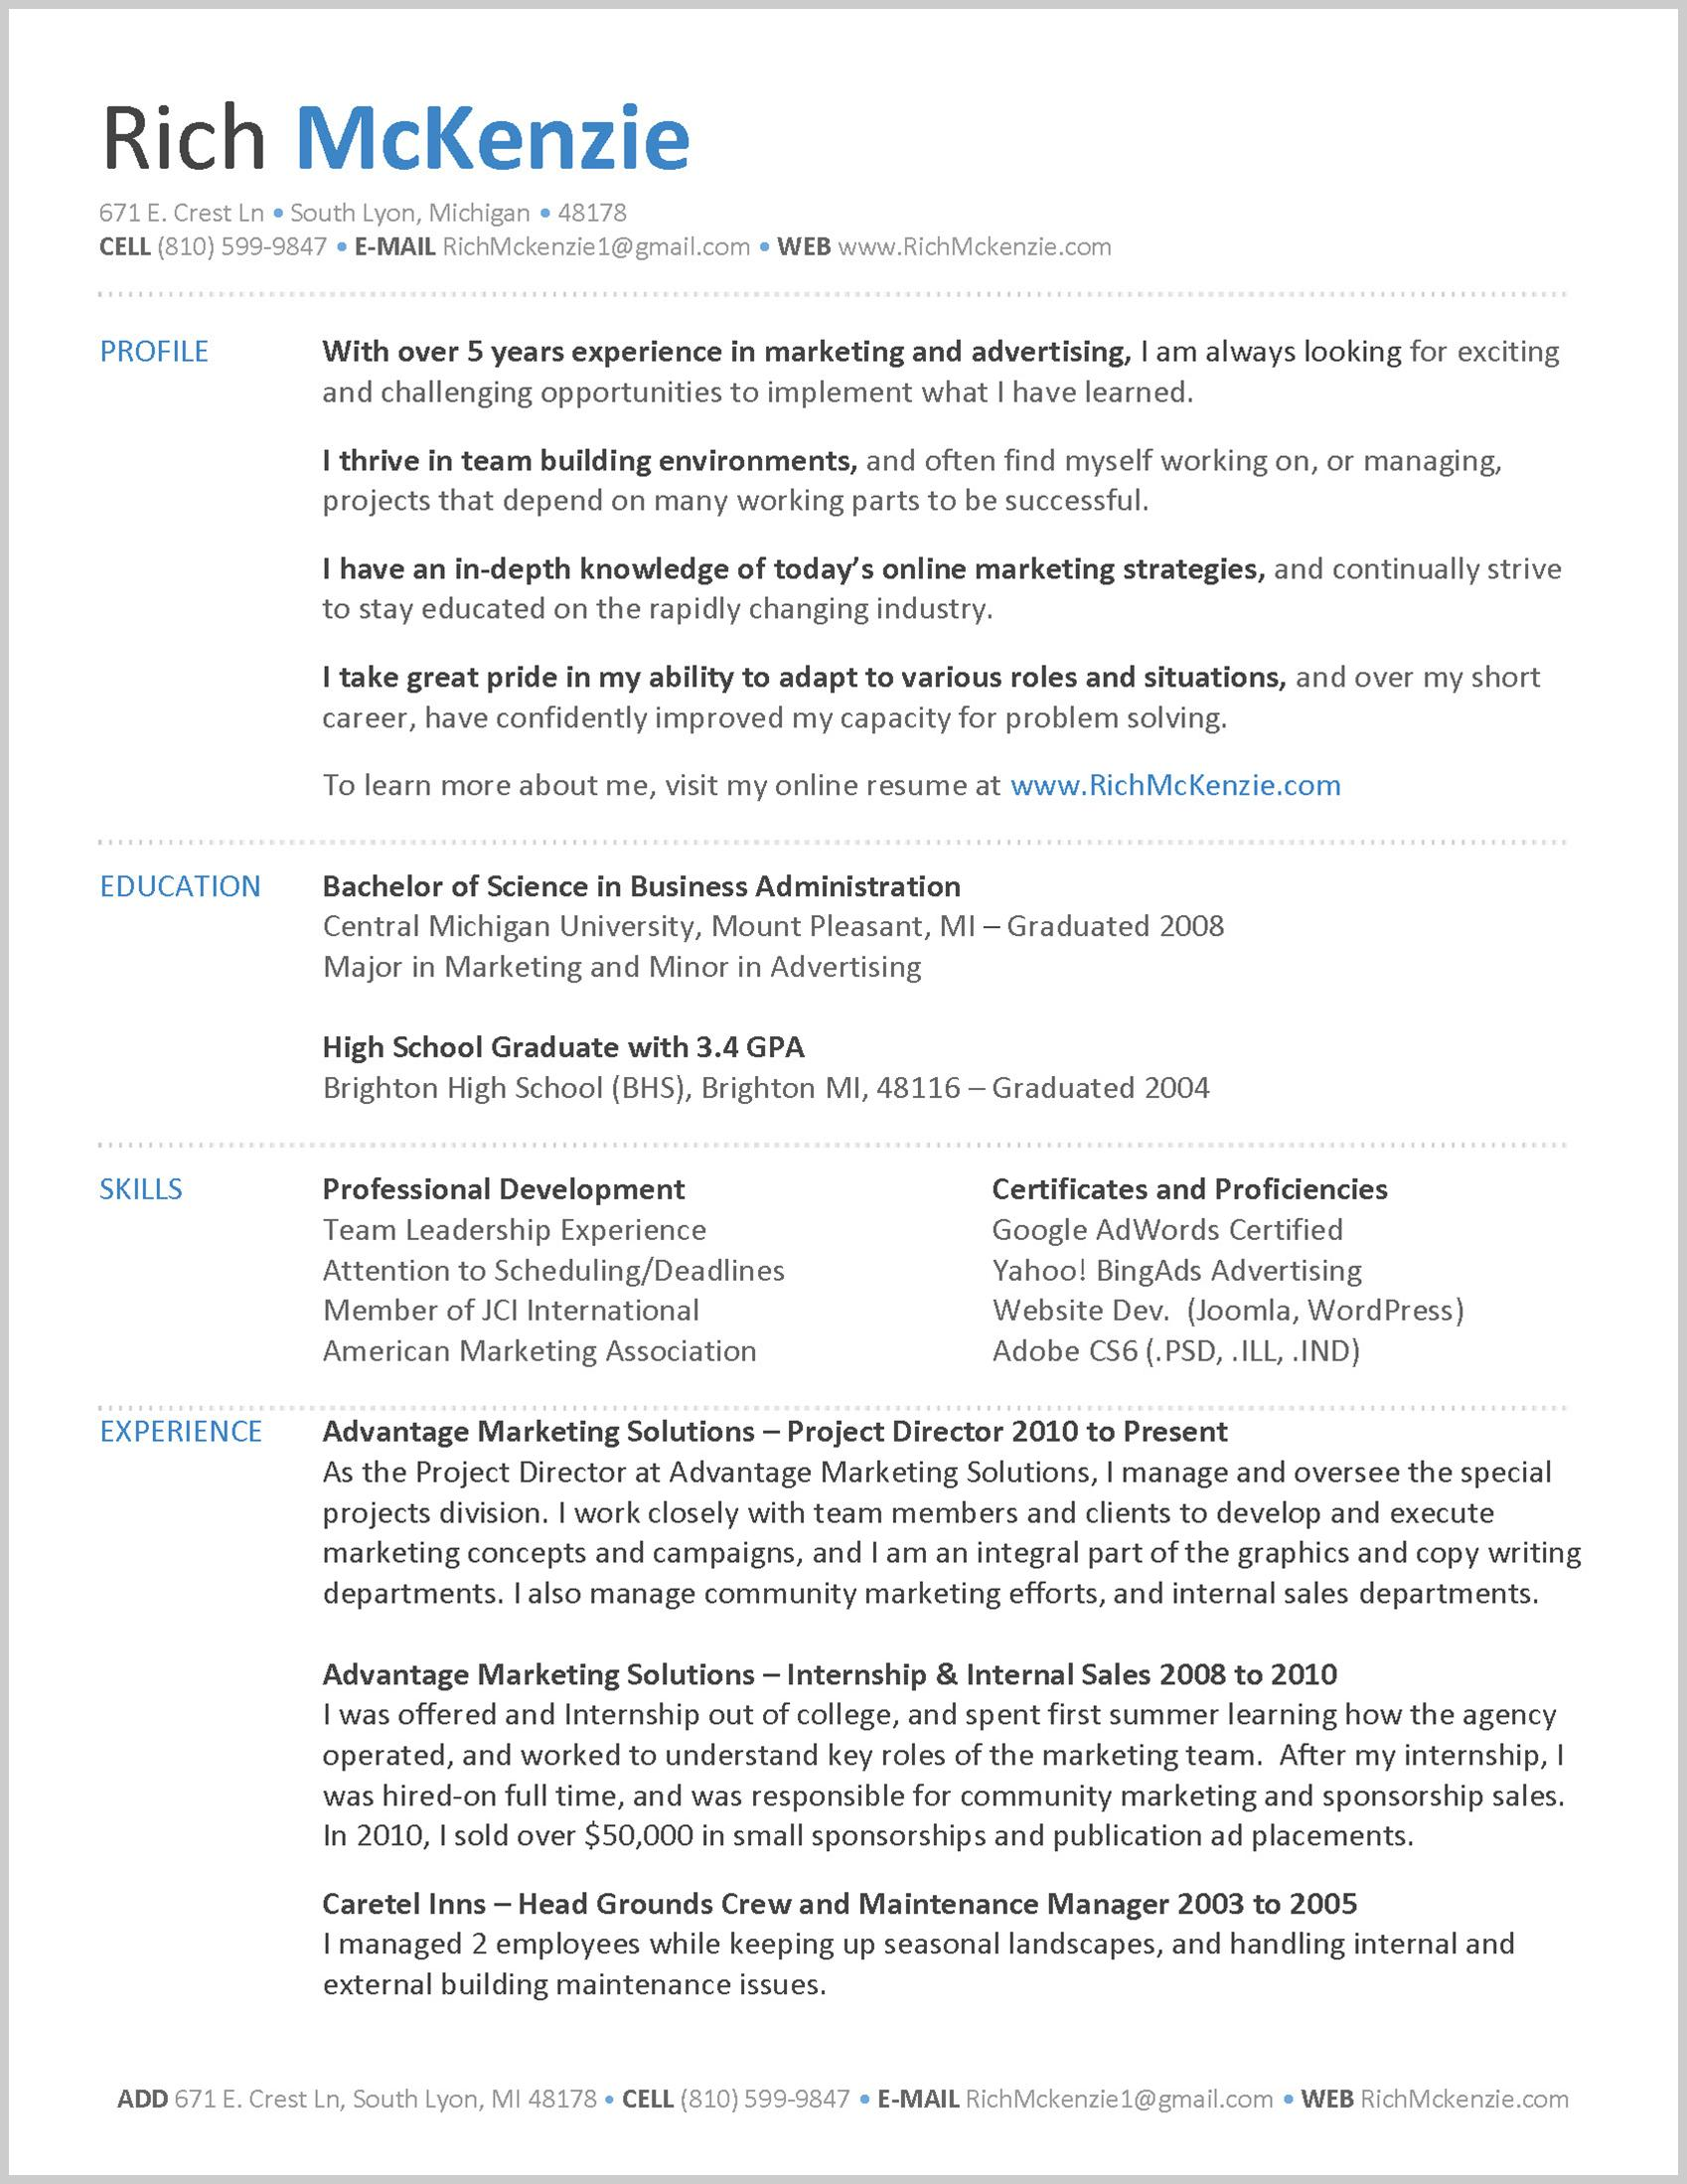 help my resume job cover letter help resume maker create professional resumes professional job cover letter help resume maker create professional resumes professional